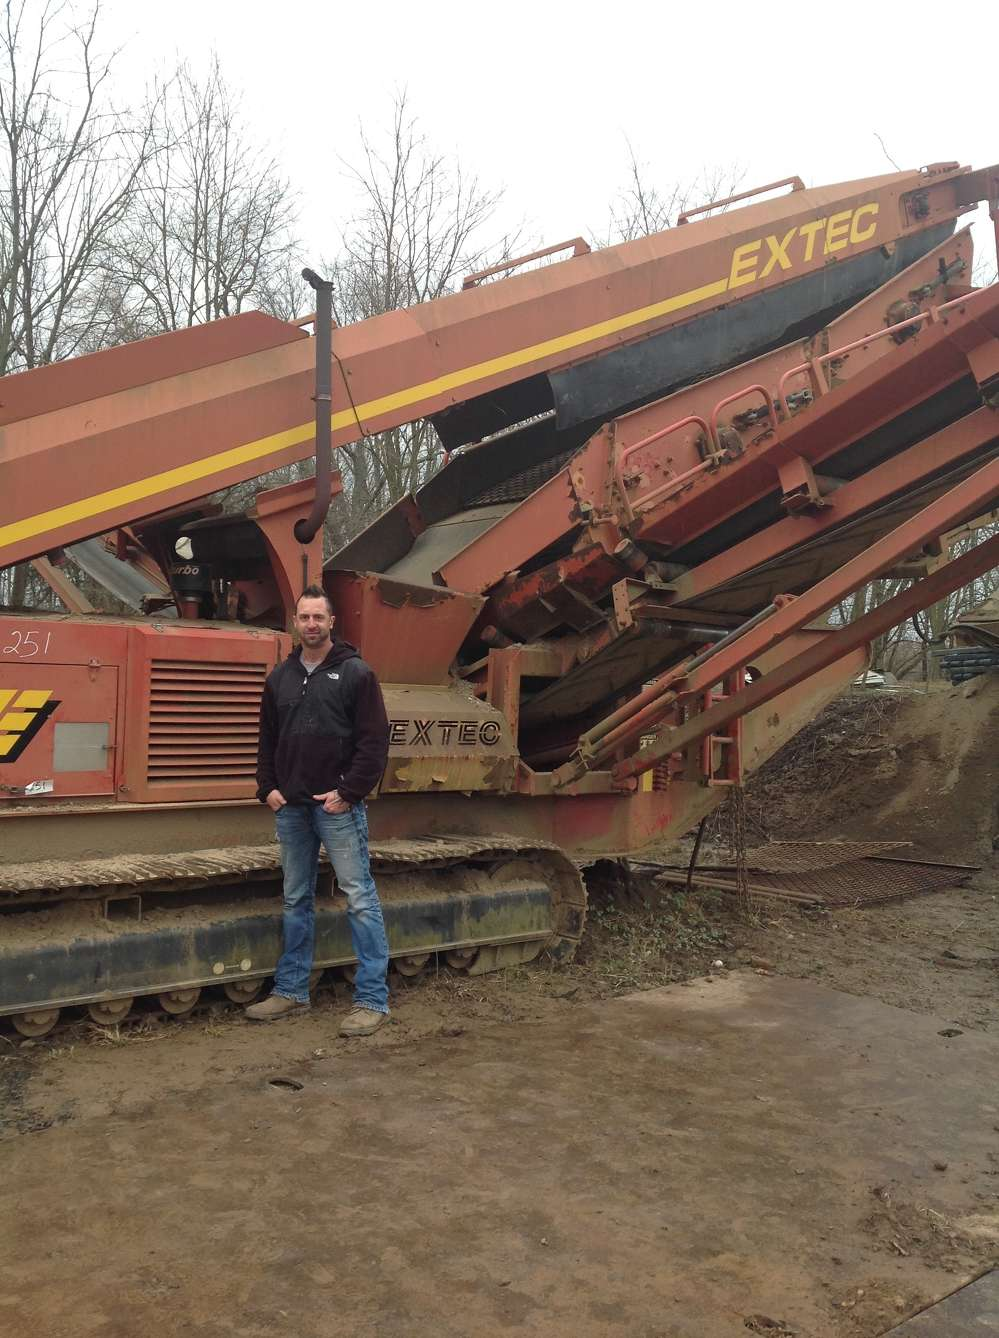 Chip Froehlich, FS Landscaping, Doylestown, Pa., inspects this 2004 EXTEC S-5 crawler.